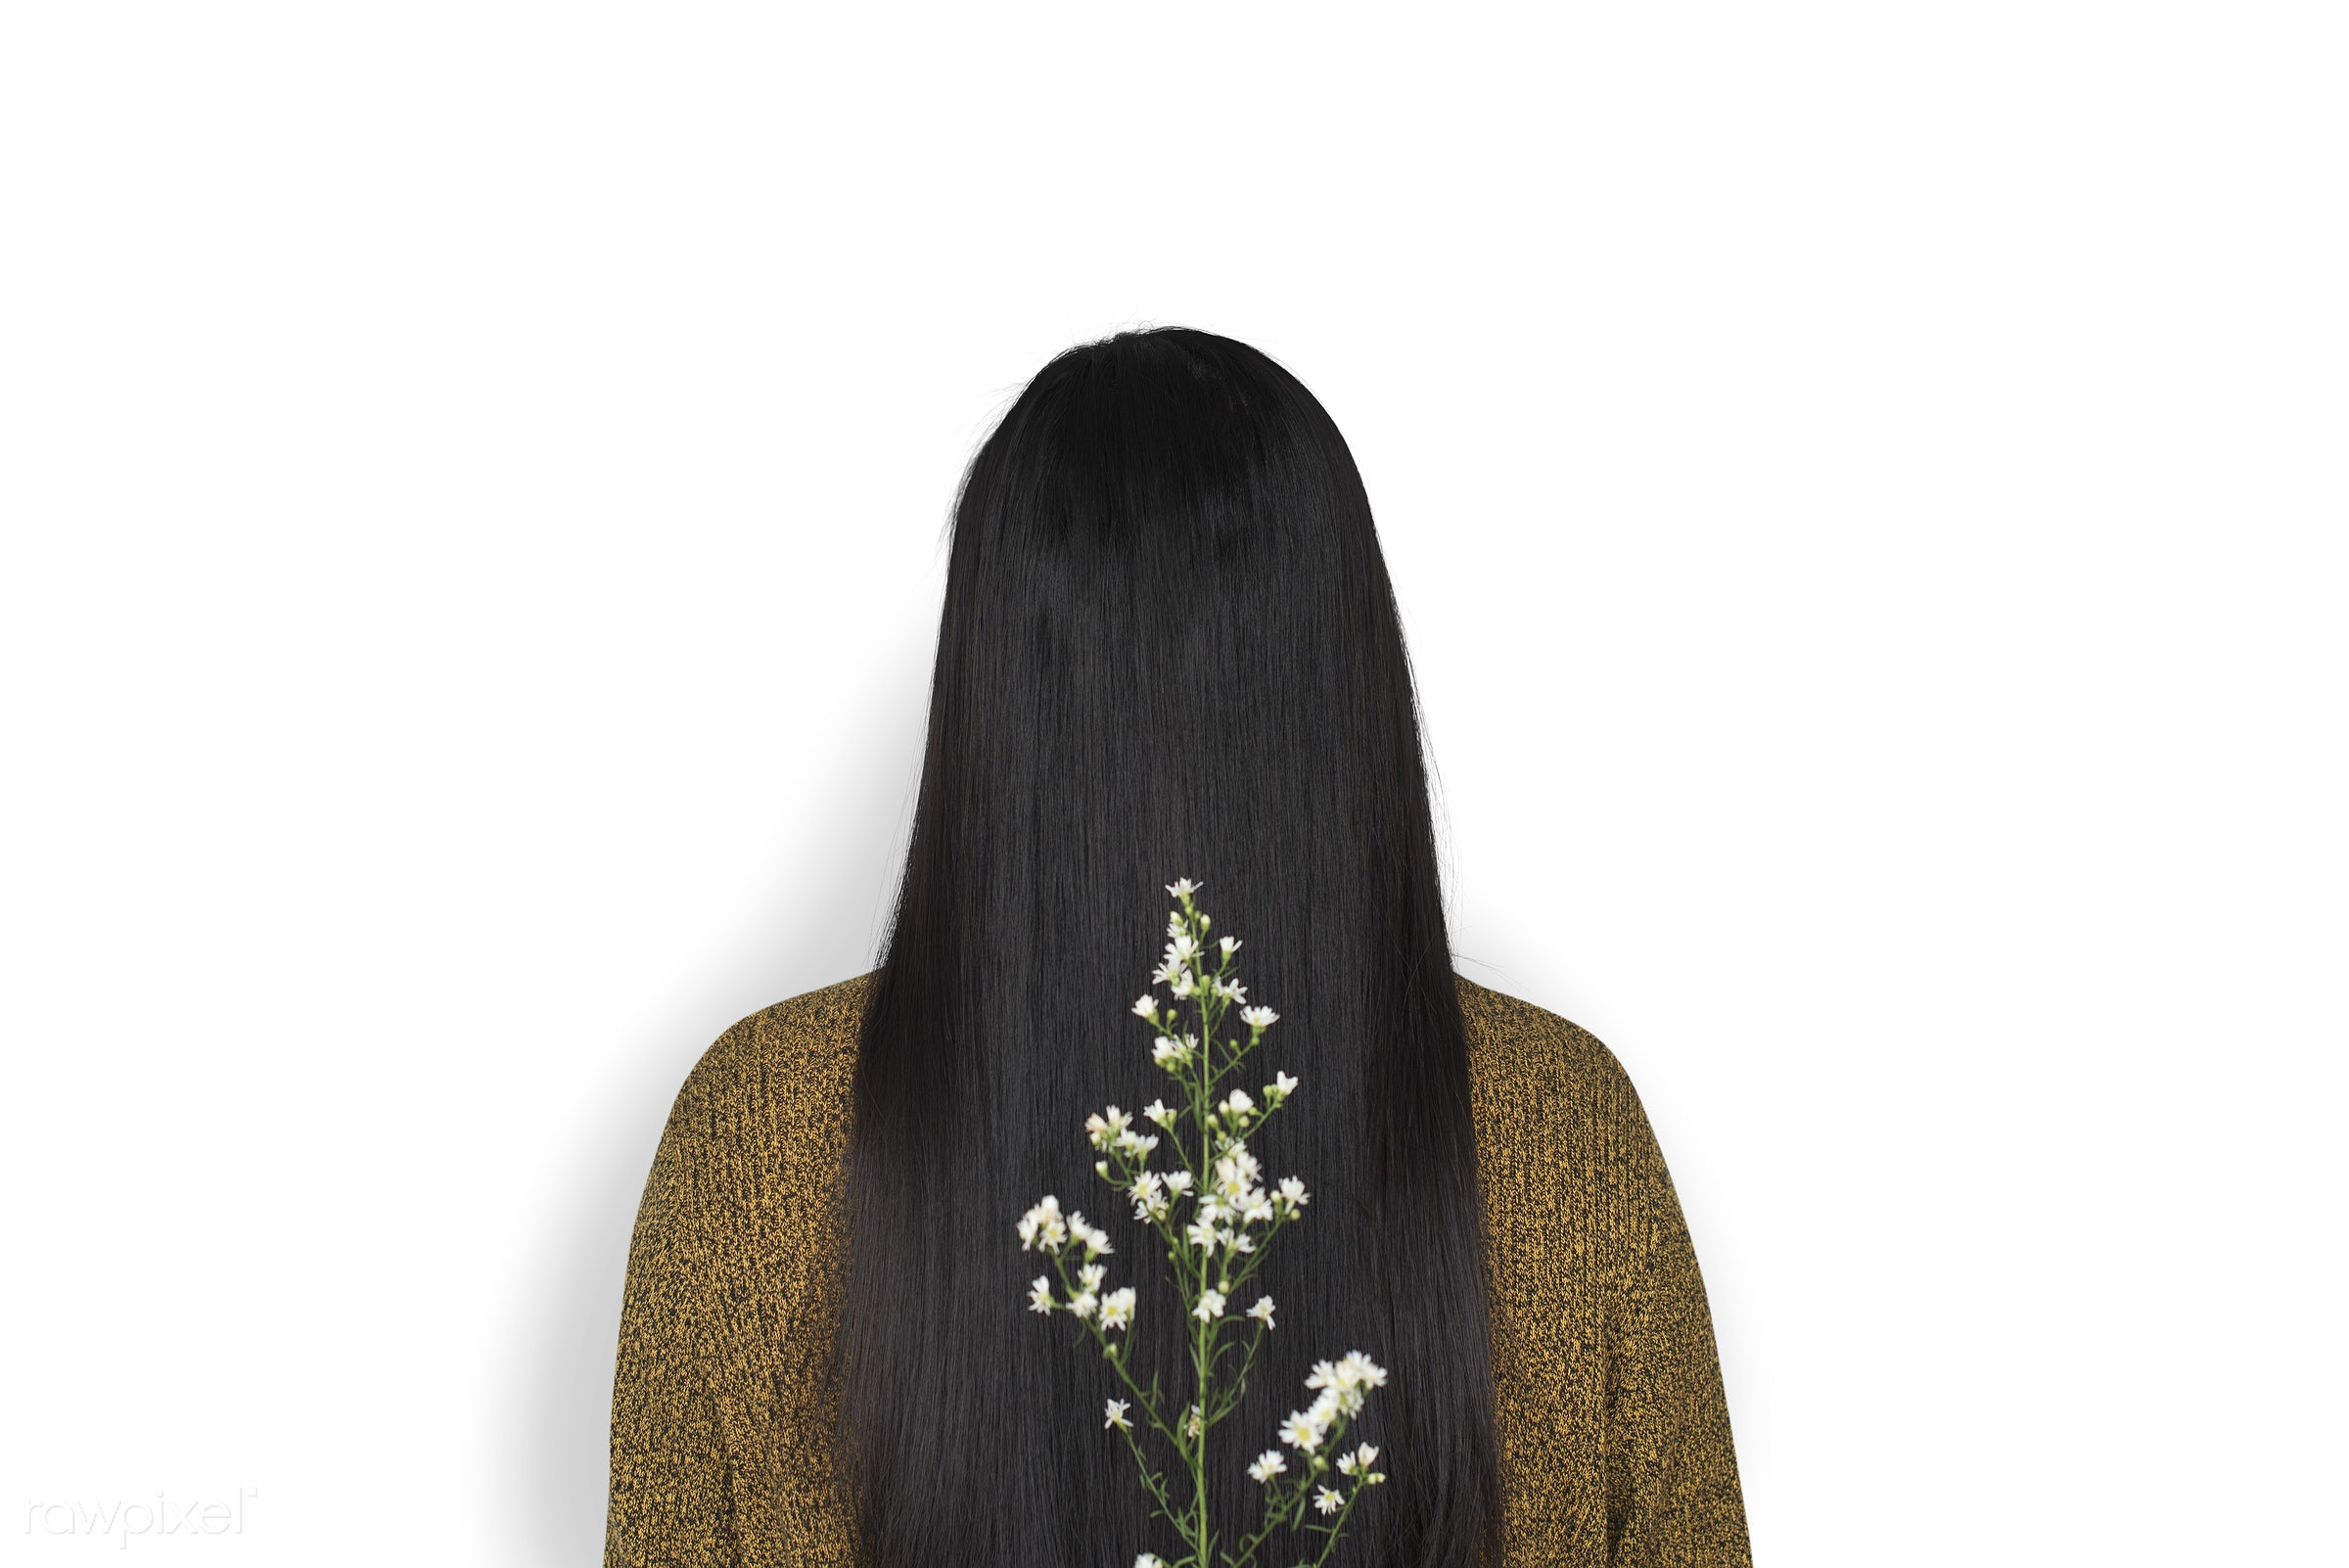 studio, person, isolated on white, people, girl, woman, casual, flower, rear view, isolated, flora, long hair, white, white...